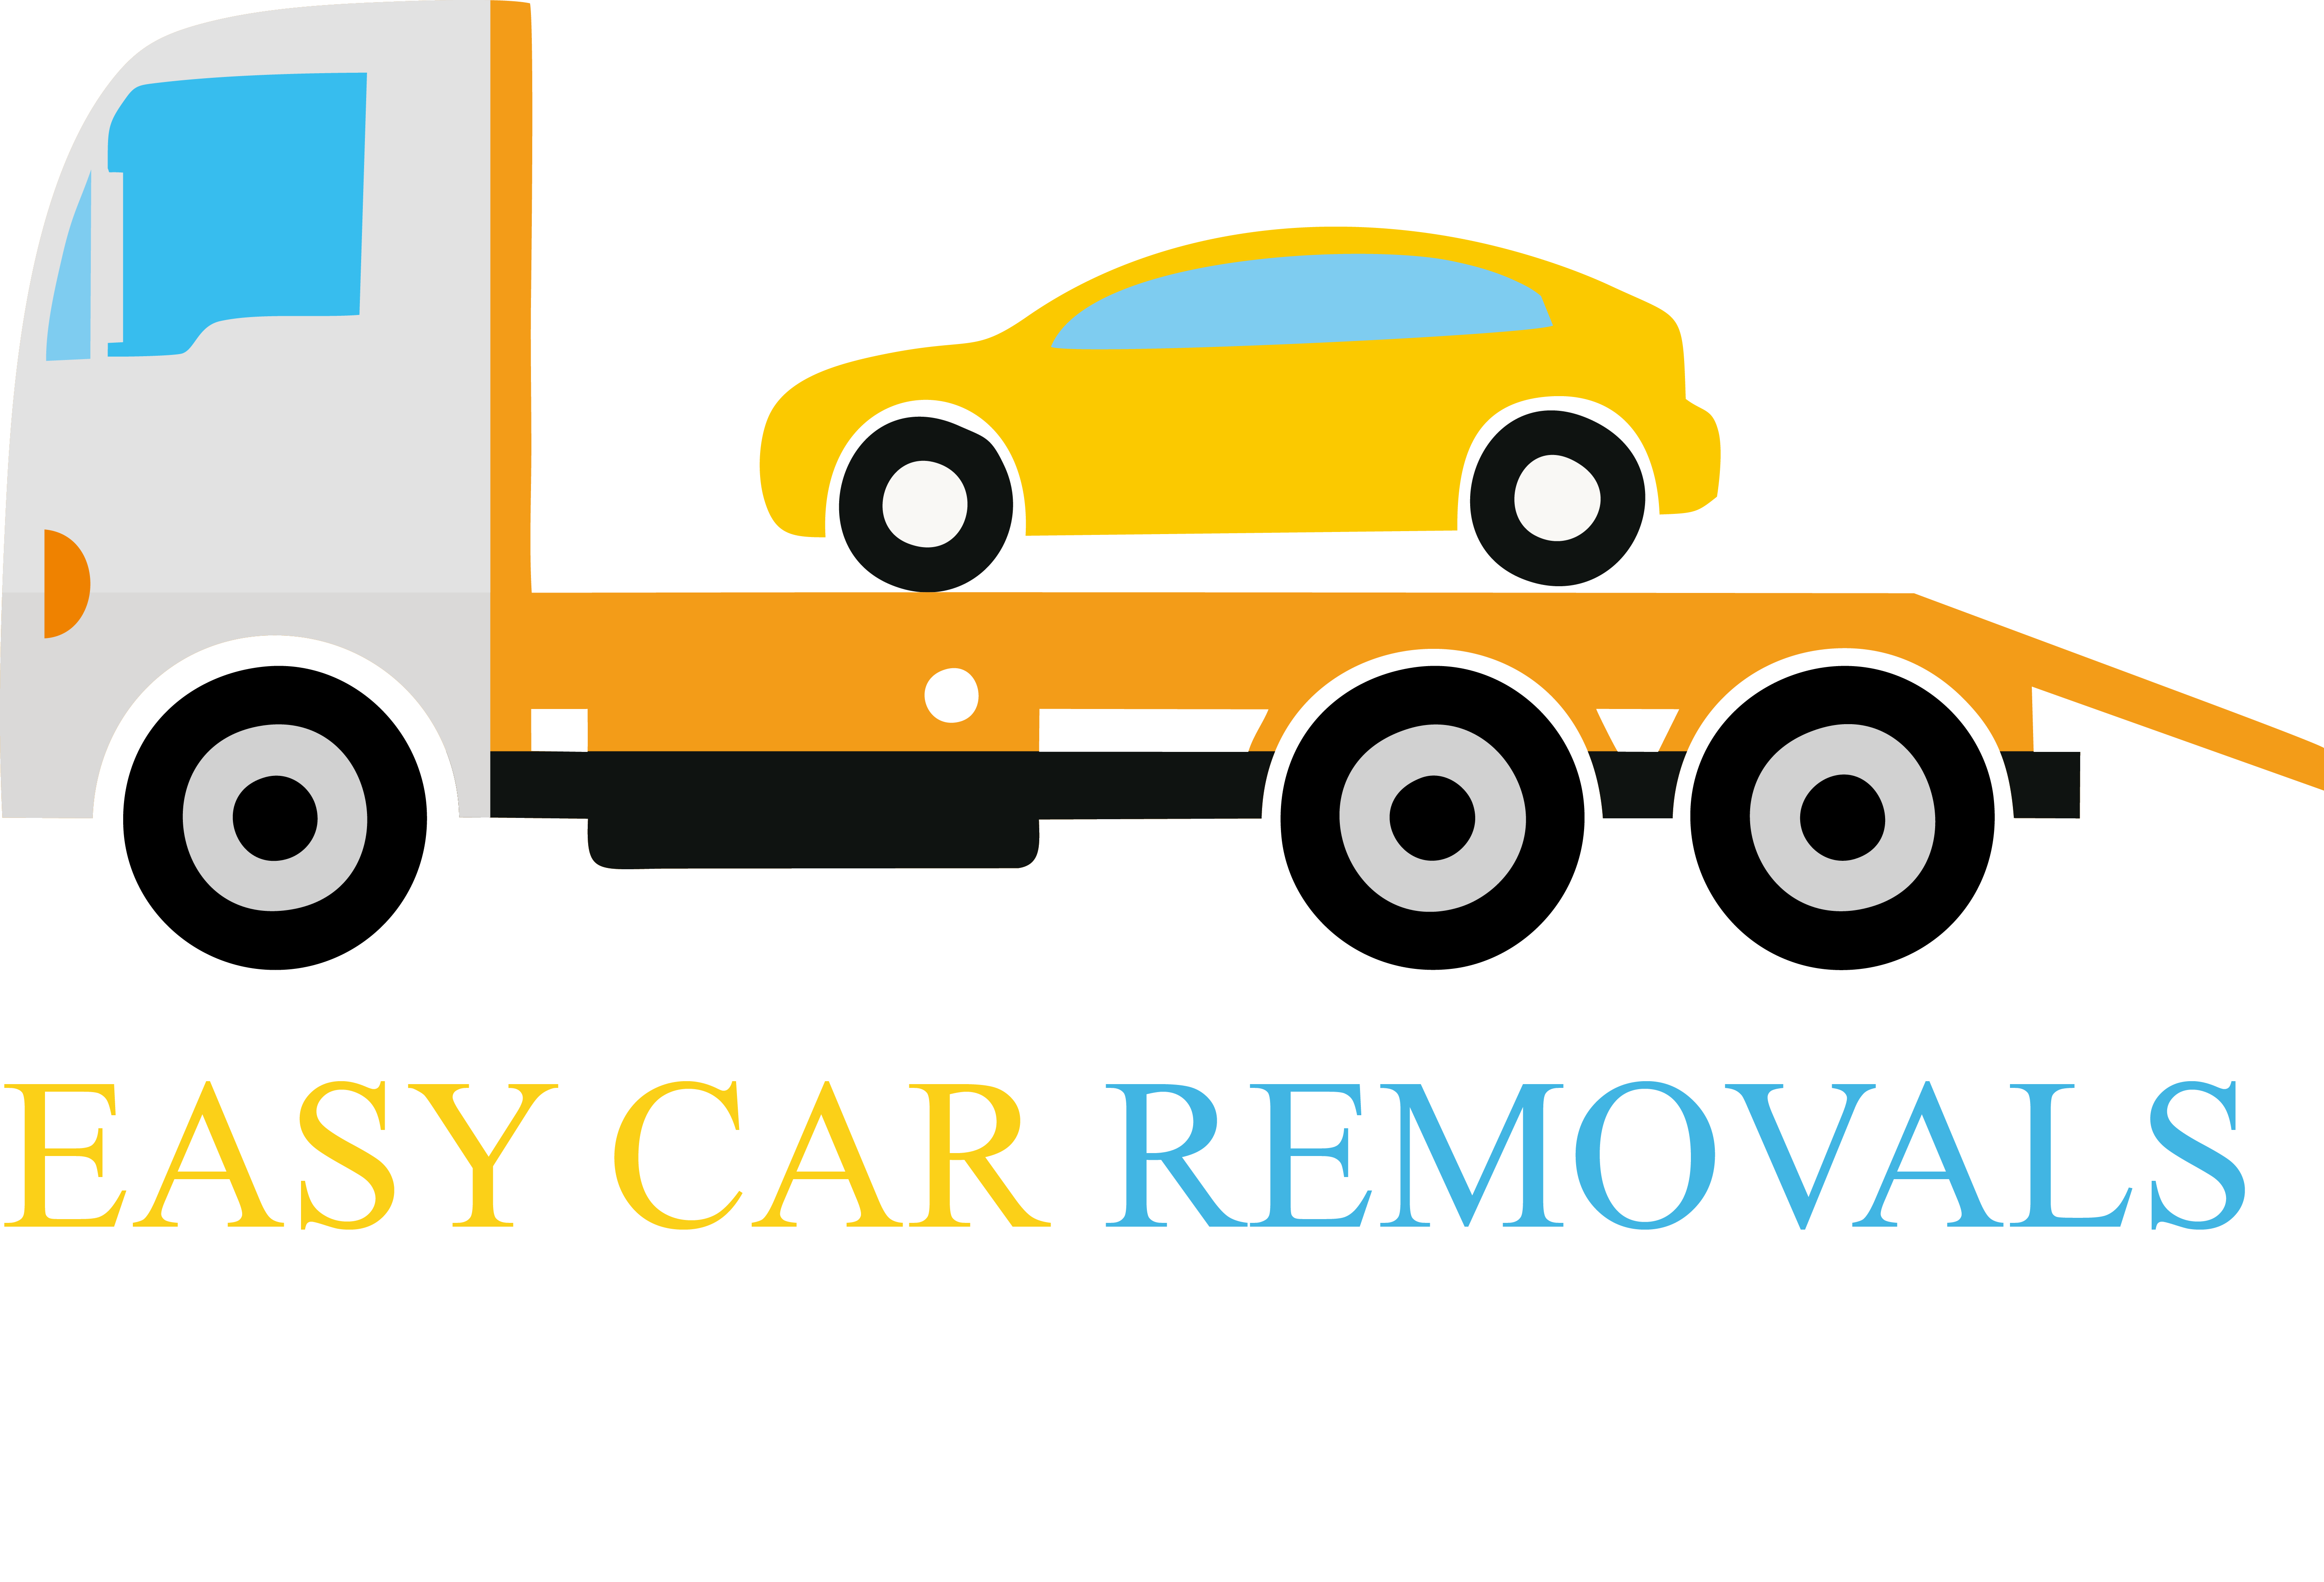 Gold car clipart vector royalty free library Scrap, junk, old, unwanted Car Removal Services - Brisbane, Gold Coast vector royalty free library